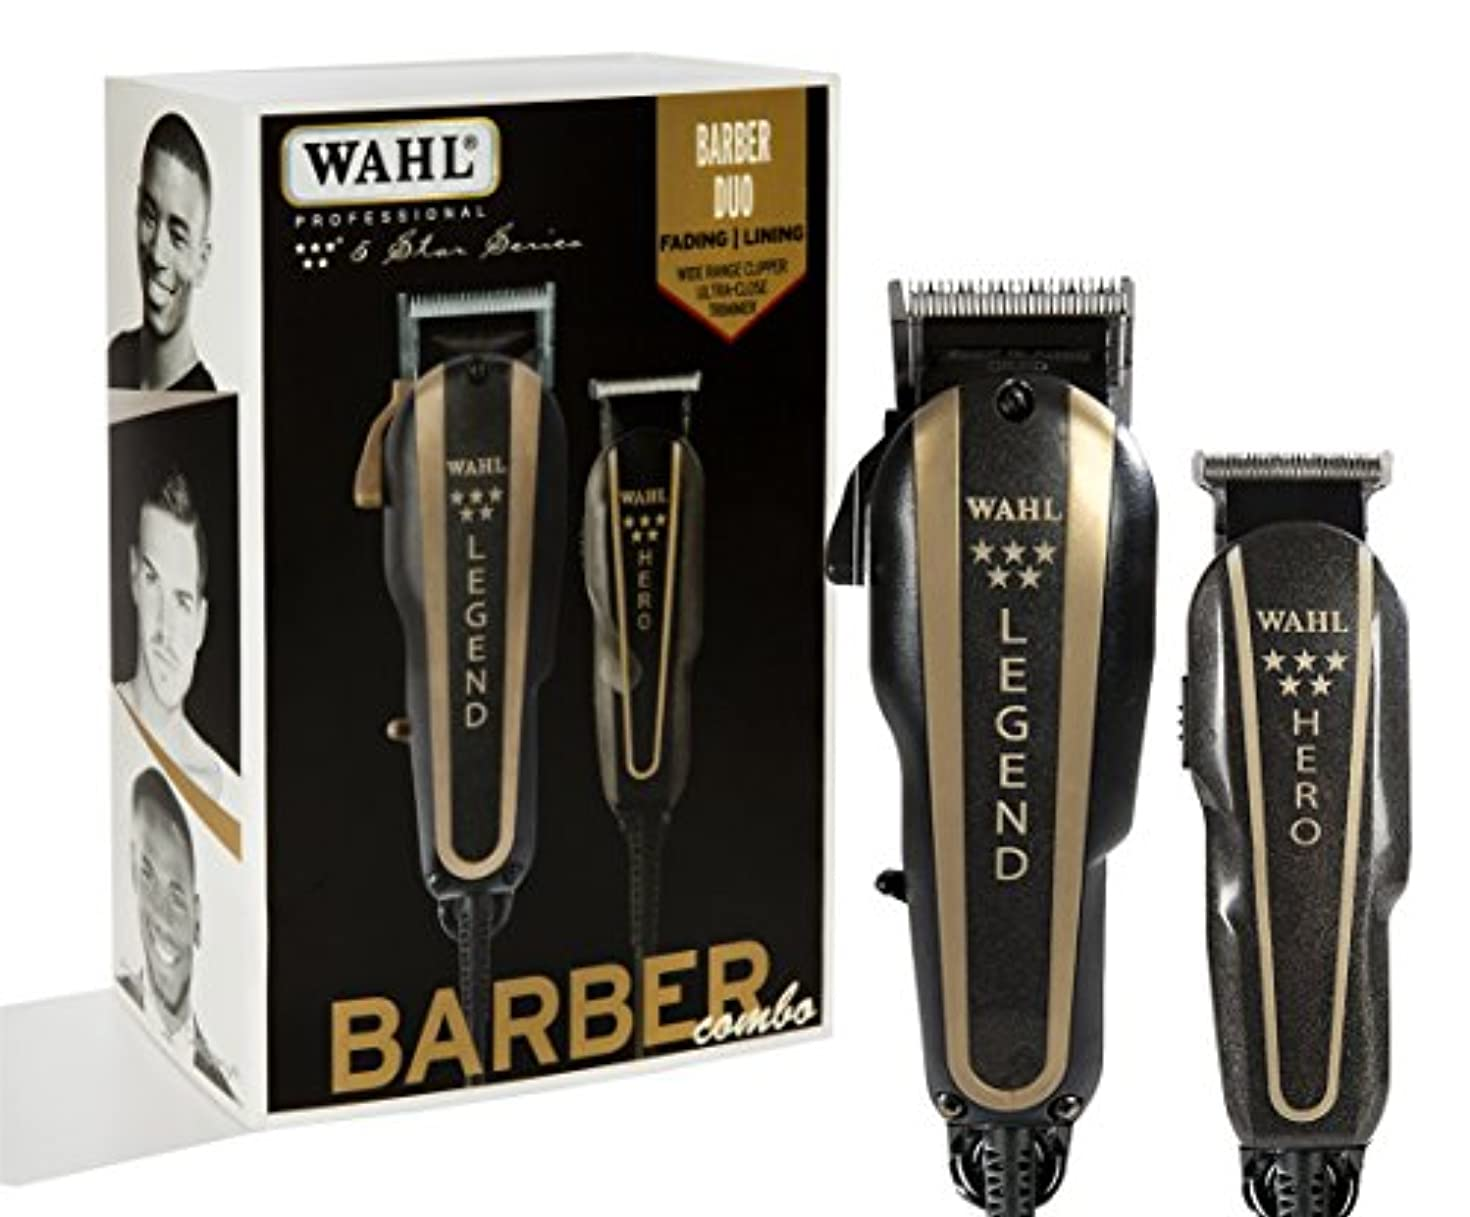 WAHL Professional 5 Star Series Barber Combo No. 8180